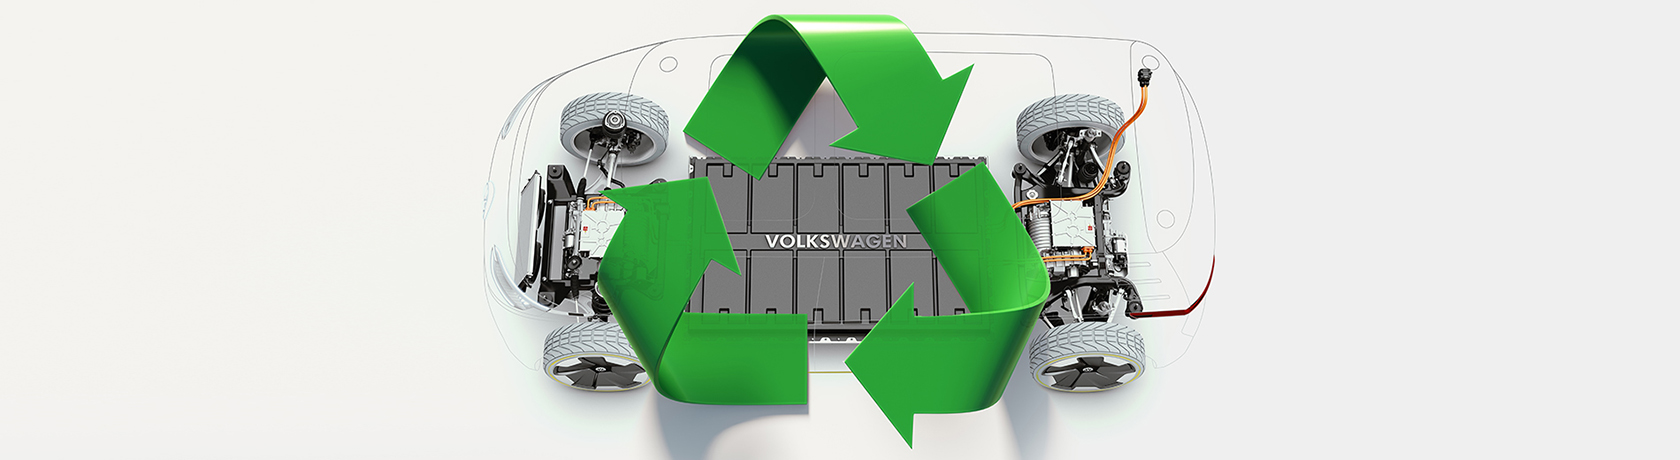 Long life to the batteries: the Volkswagen Group's recycling strategy